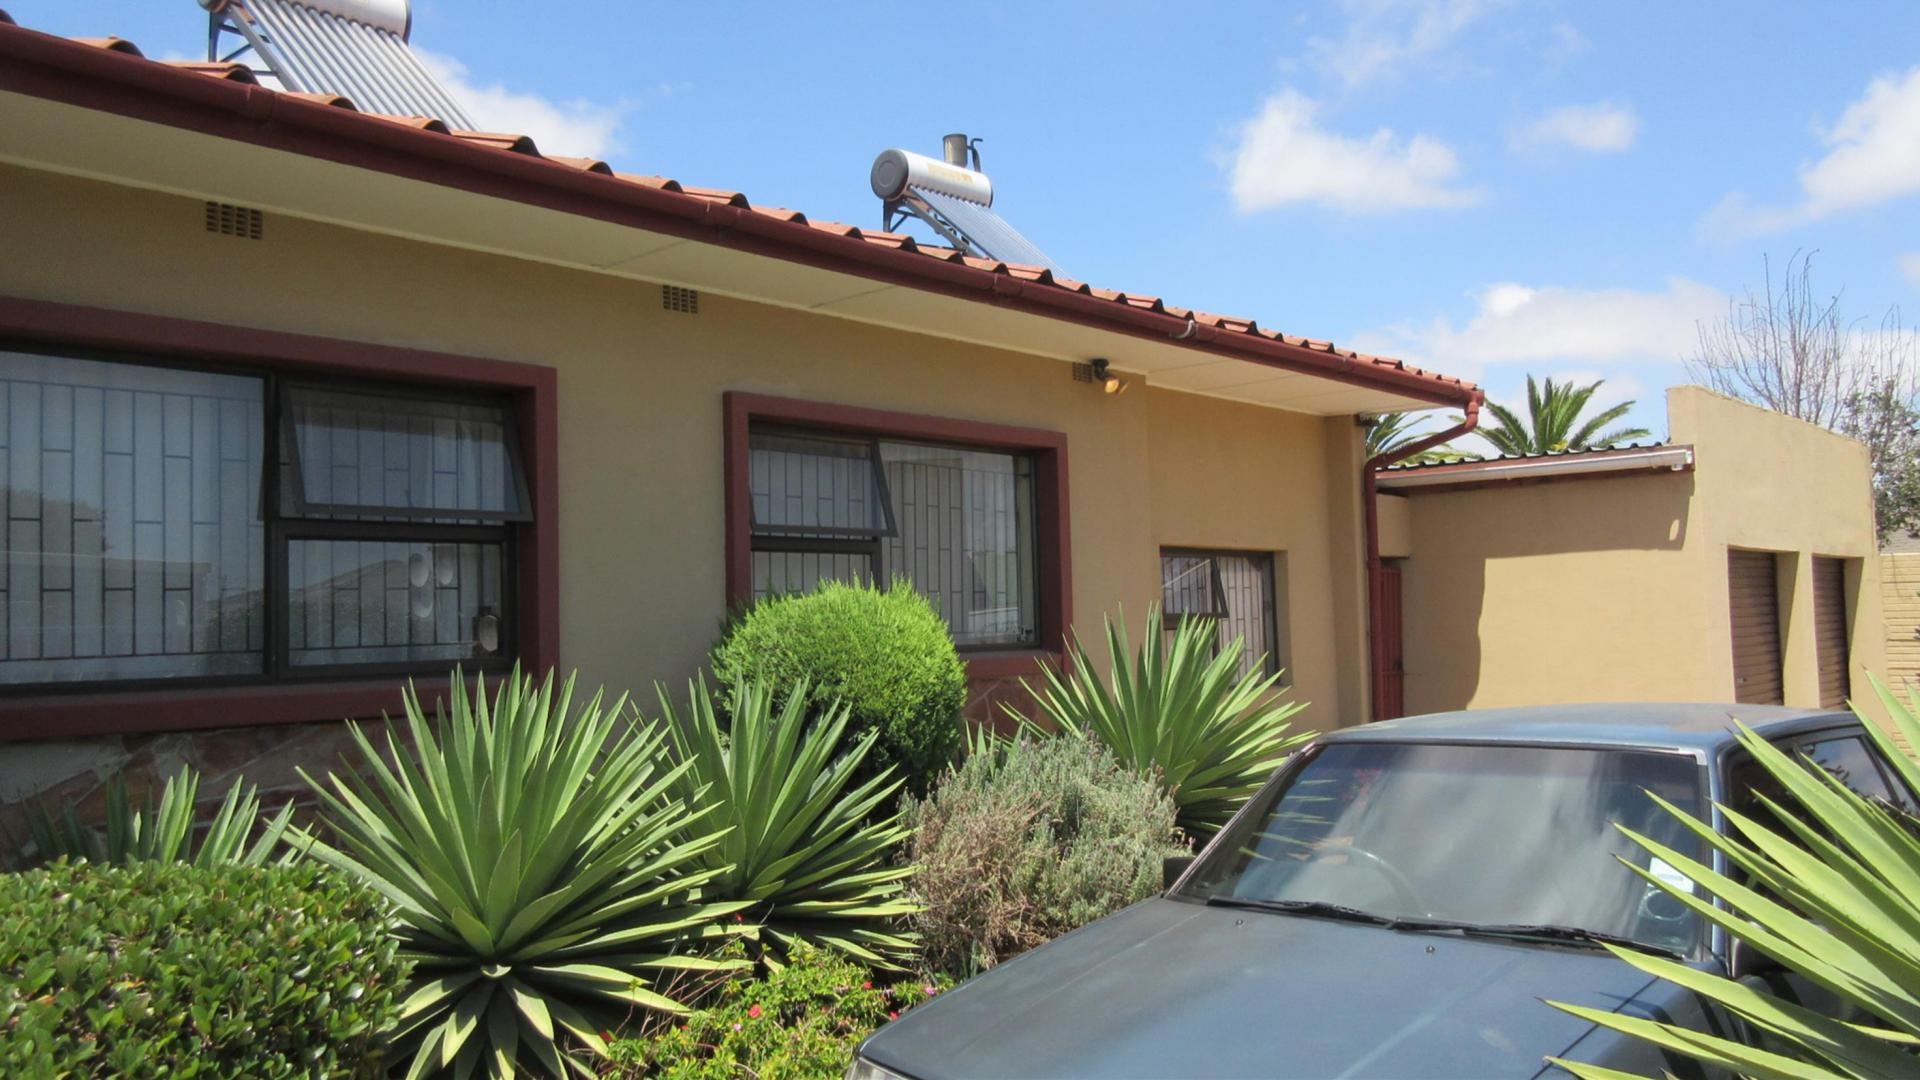 6 Bedroom House For Sale For Sale In Kraaifontein Home